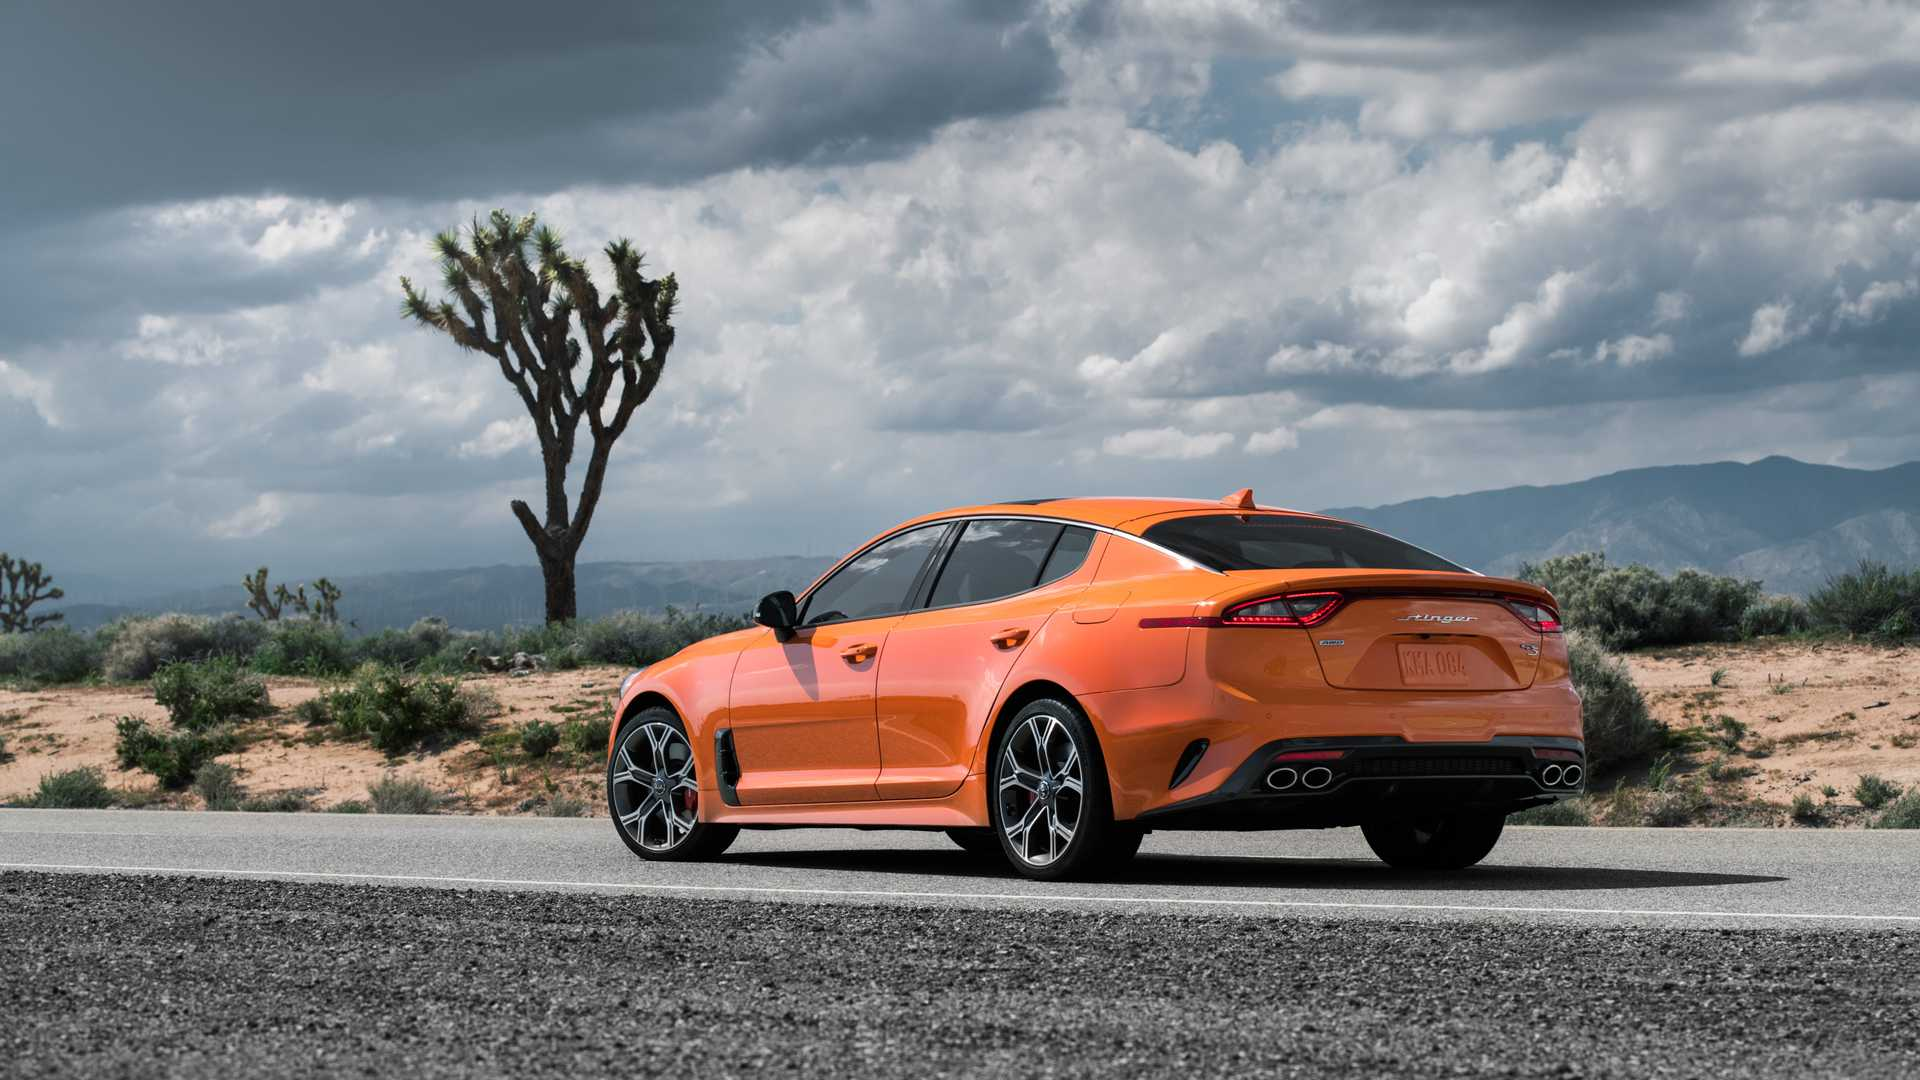 2020 Kia Stinger GTS Rear Three-Quarter Wallpaper (5)